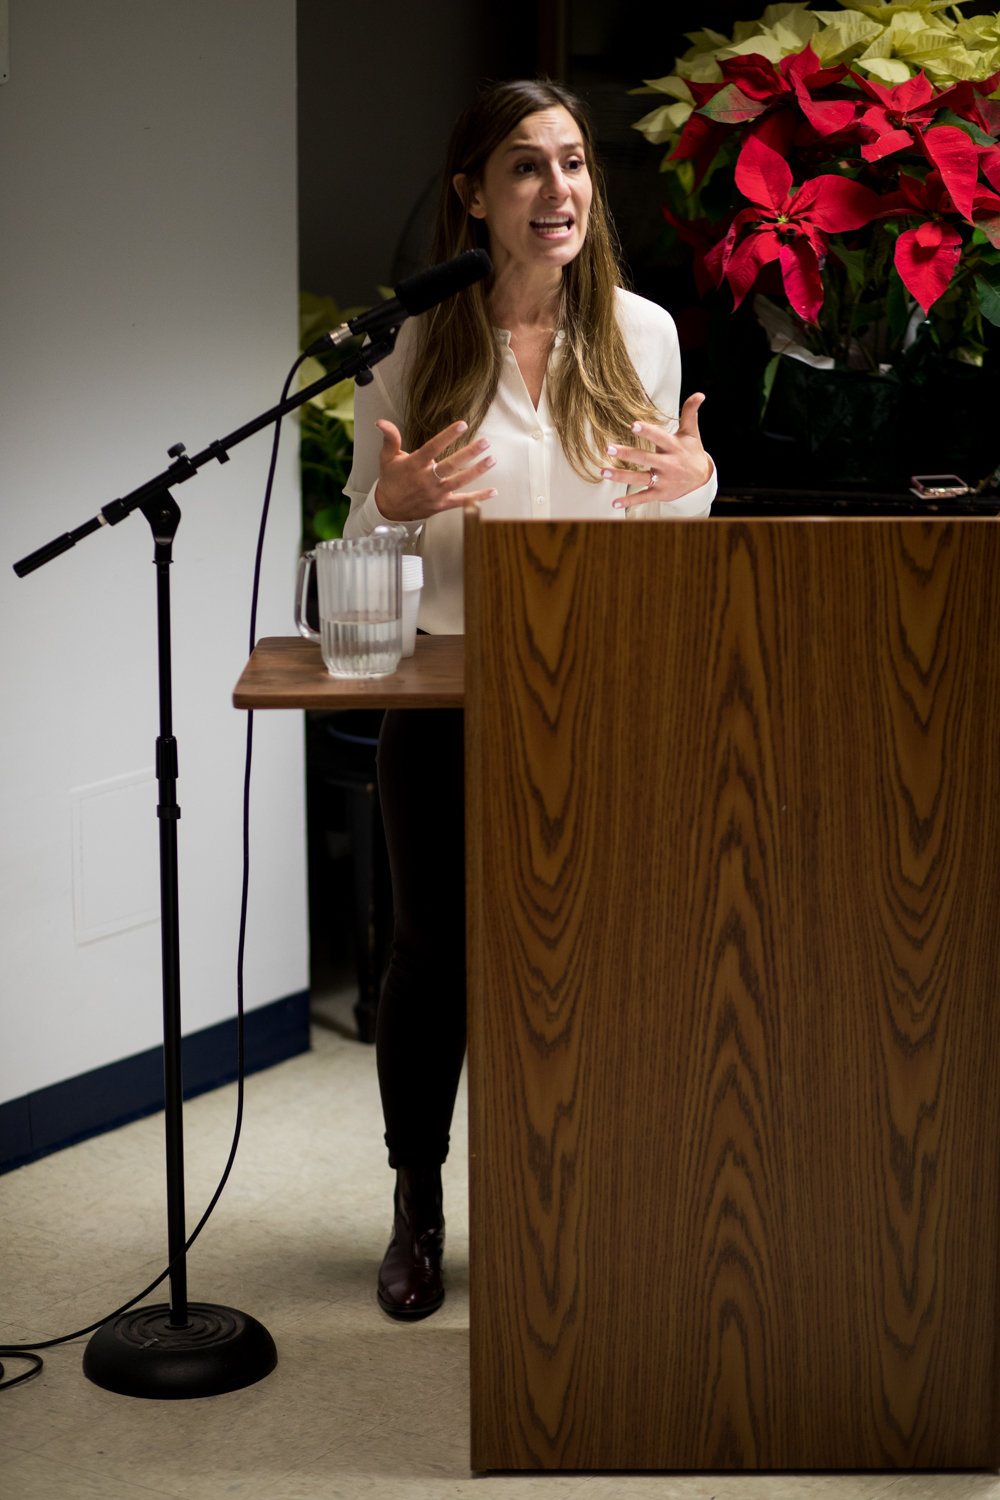 State Sen. Alessandra Biaggi speaks about the New York Health Act at RSS-Riverdale Senior Services in February.